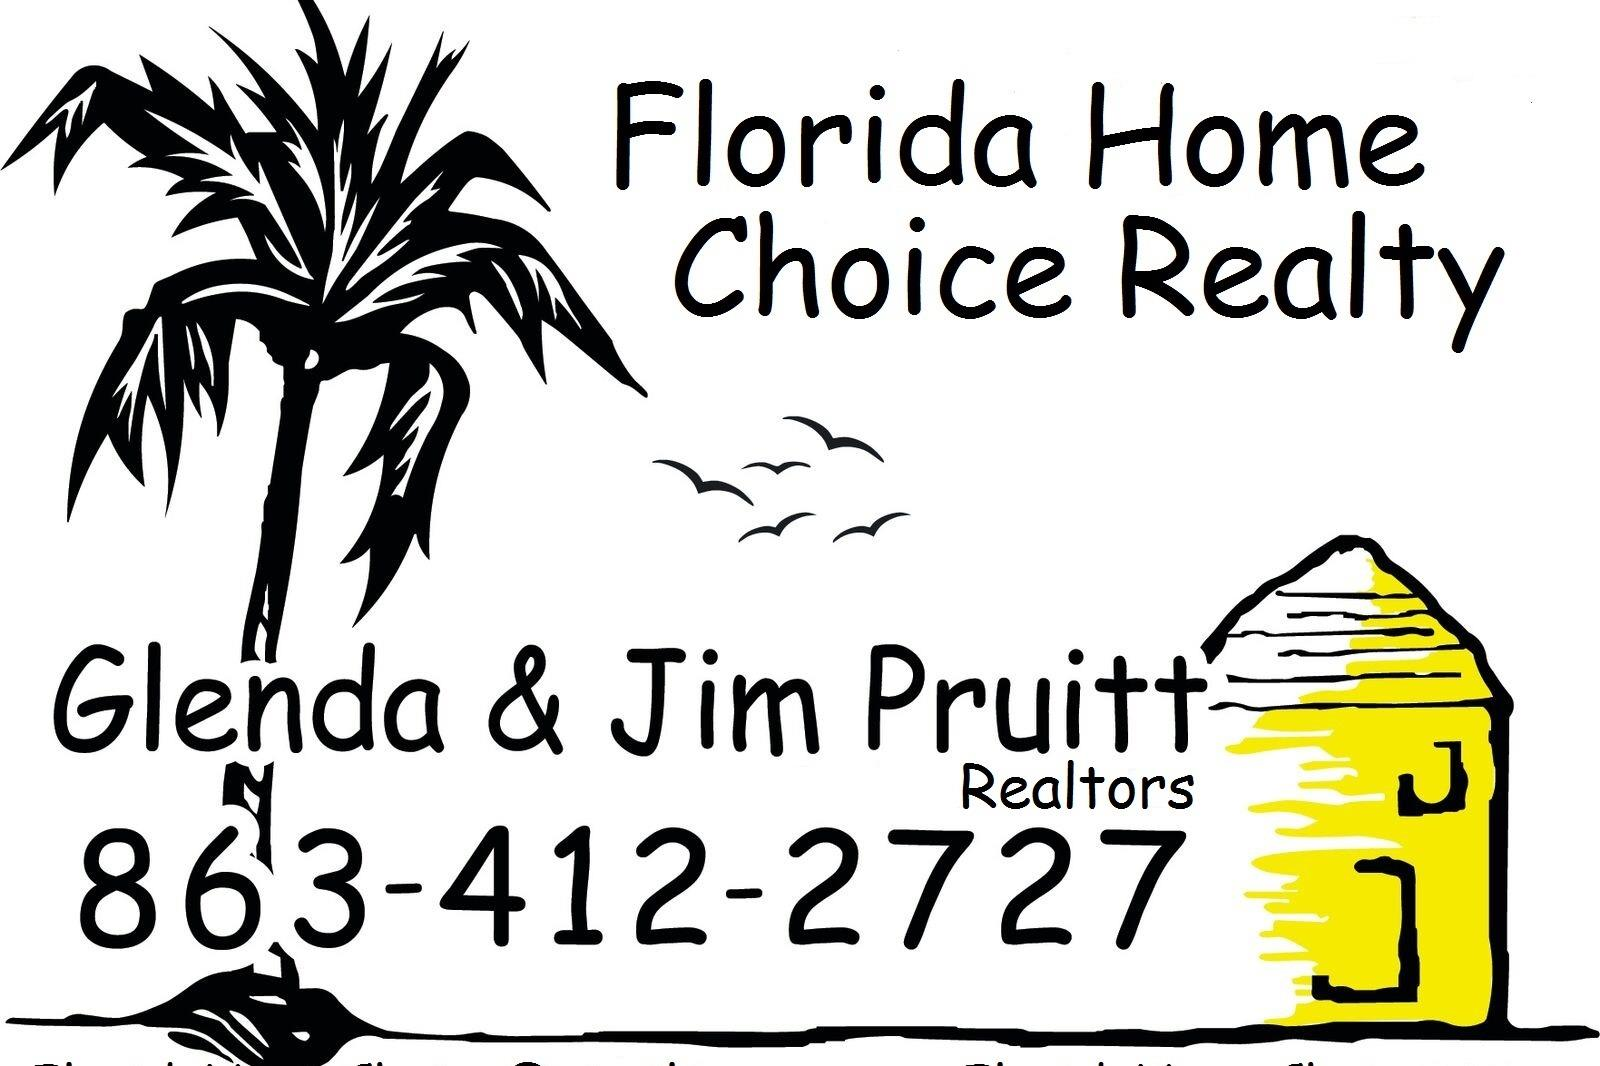 FLORIDA HOME CHOICE REALTY